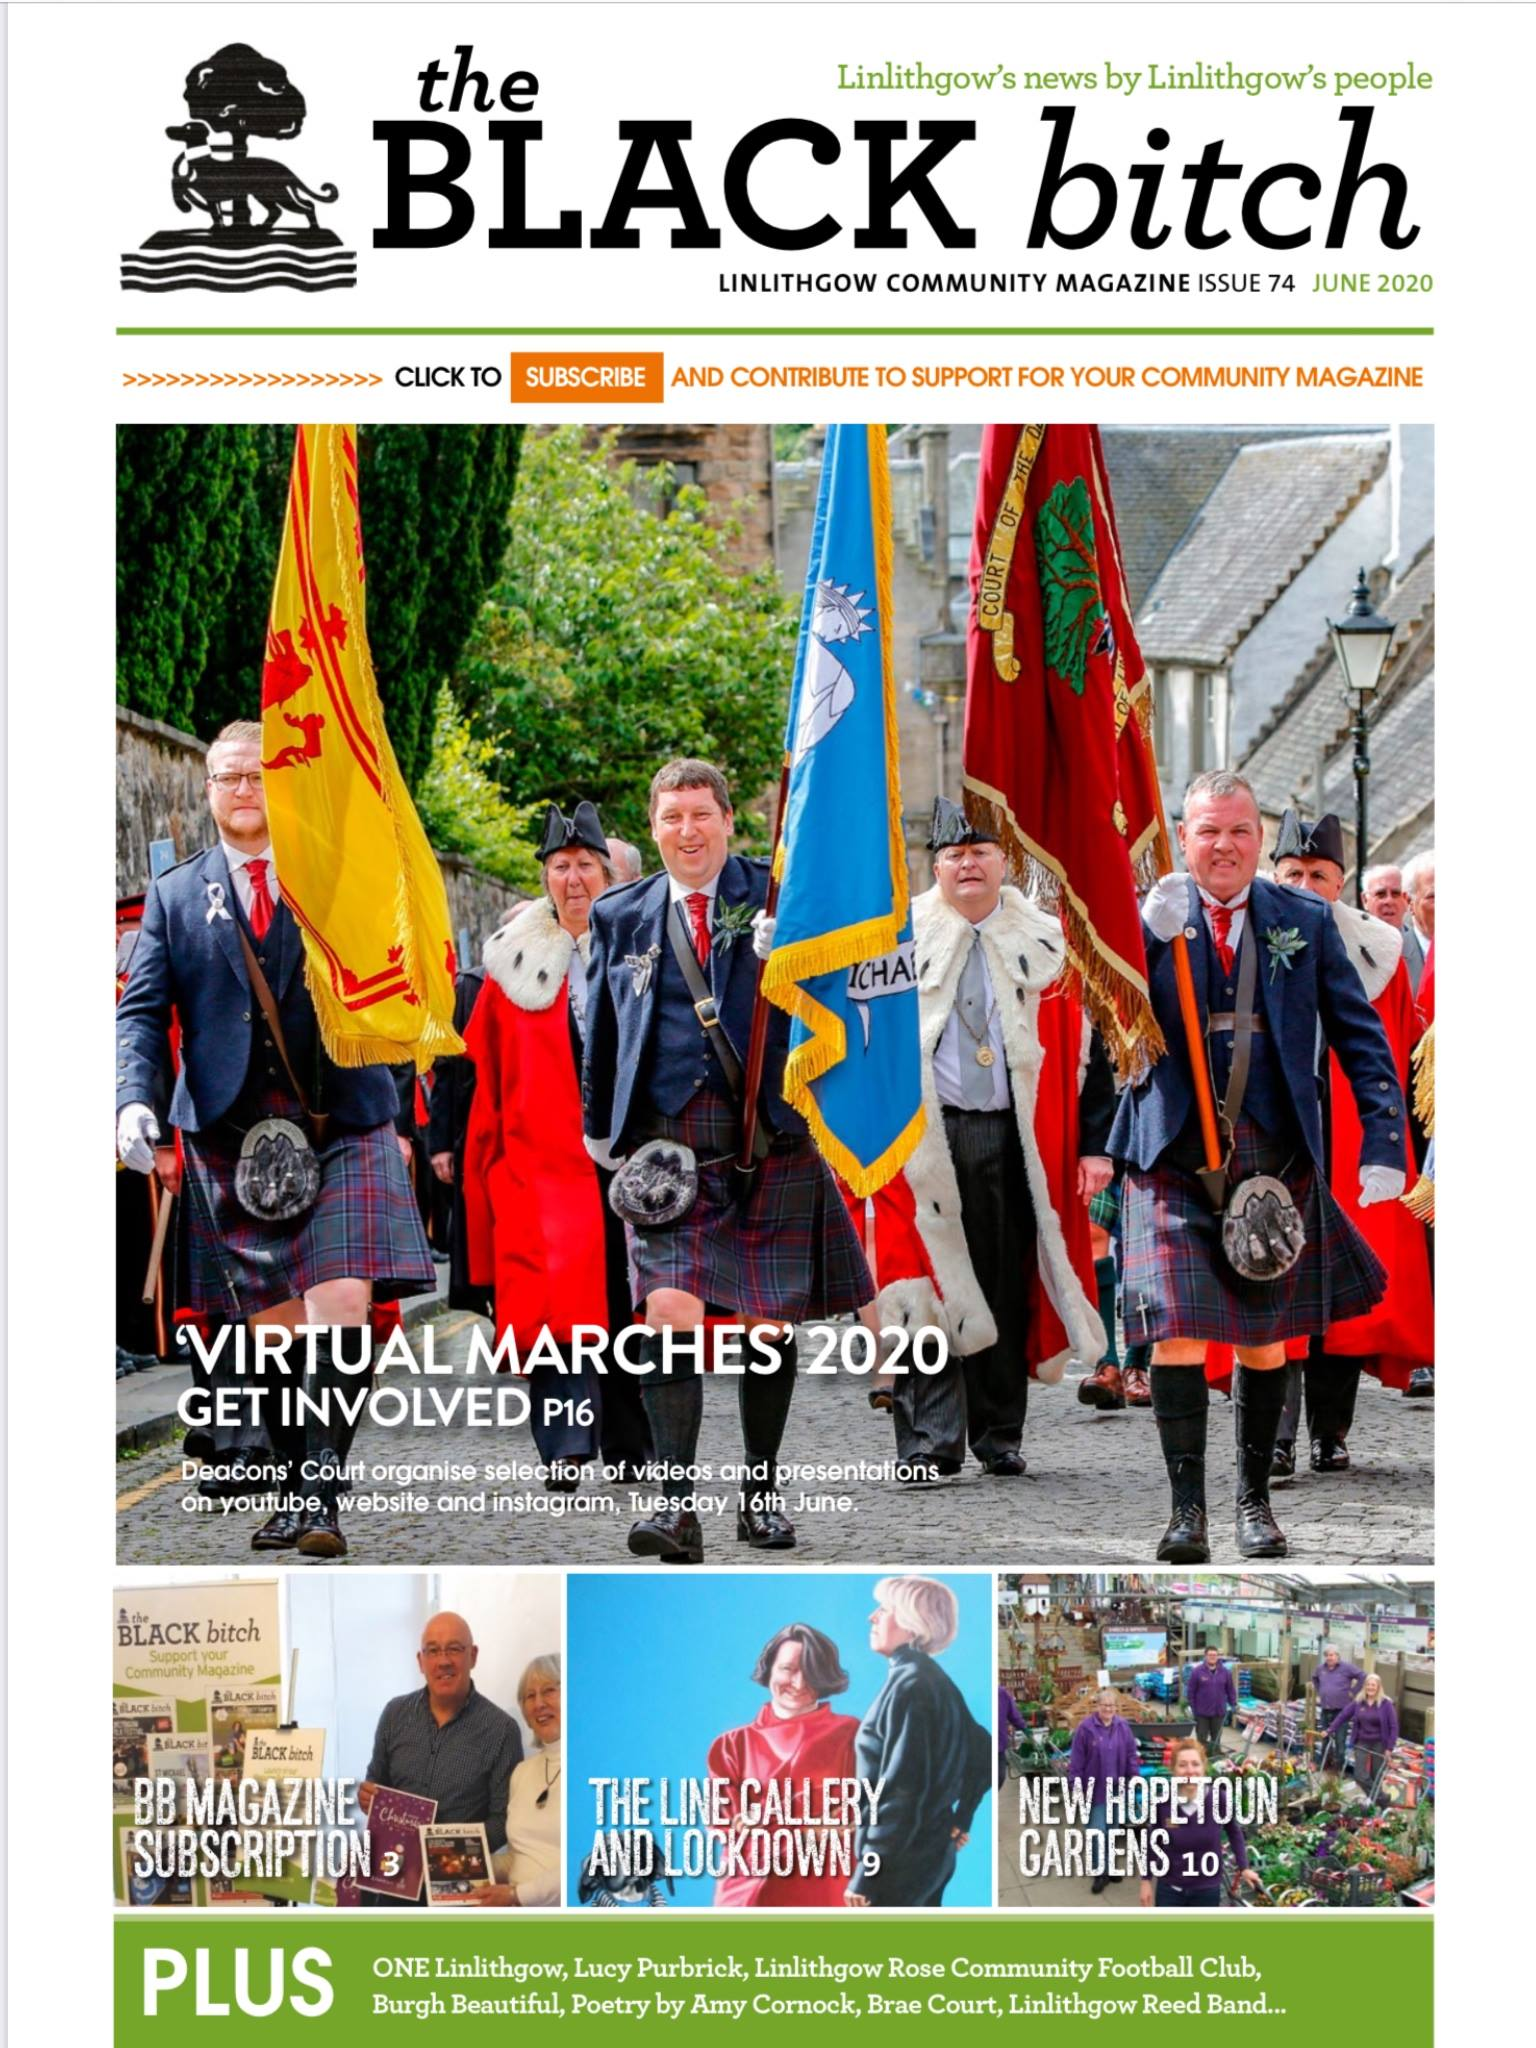 Linlithgow Community Magazine, issue 74